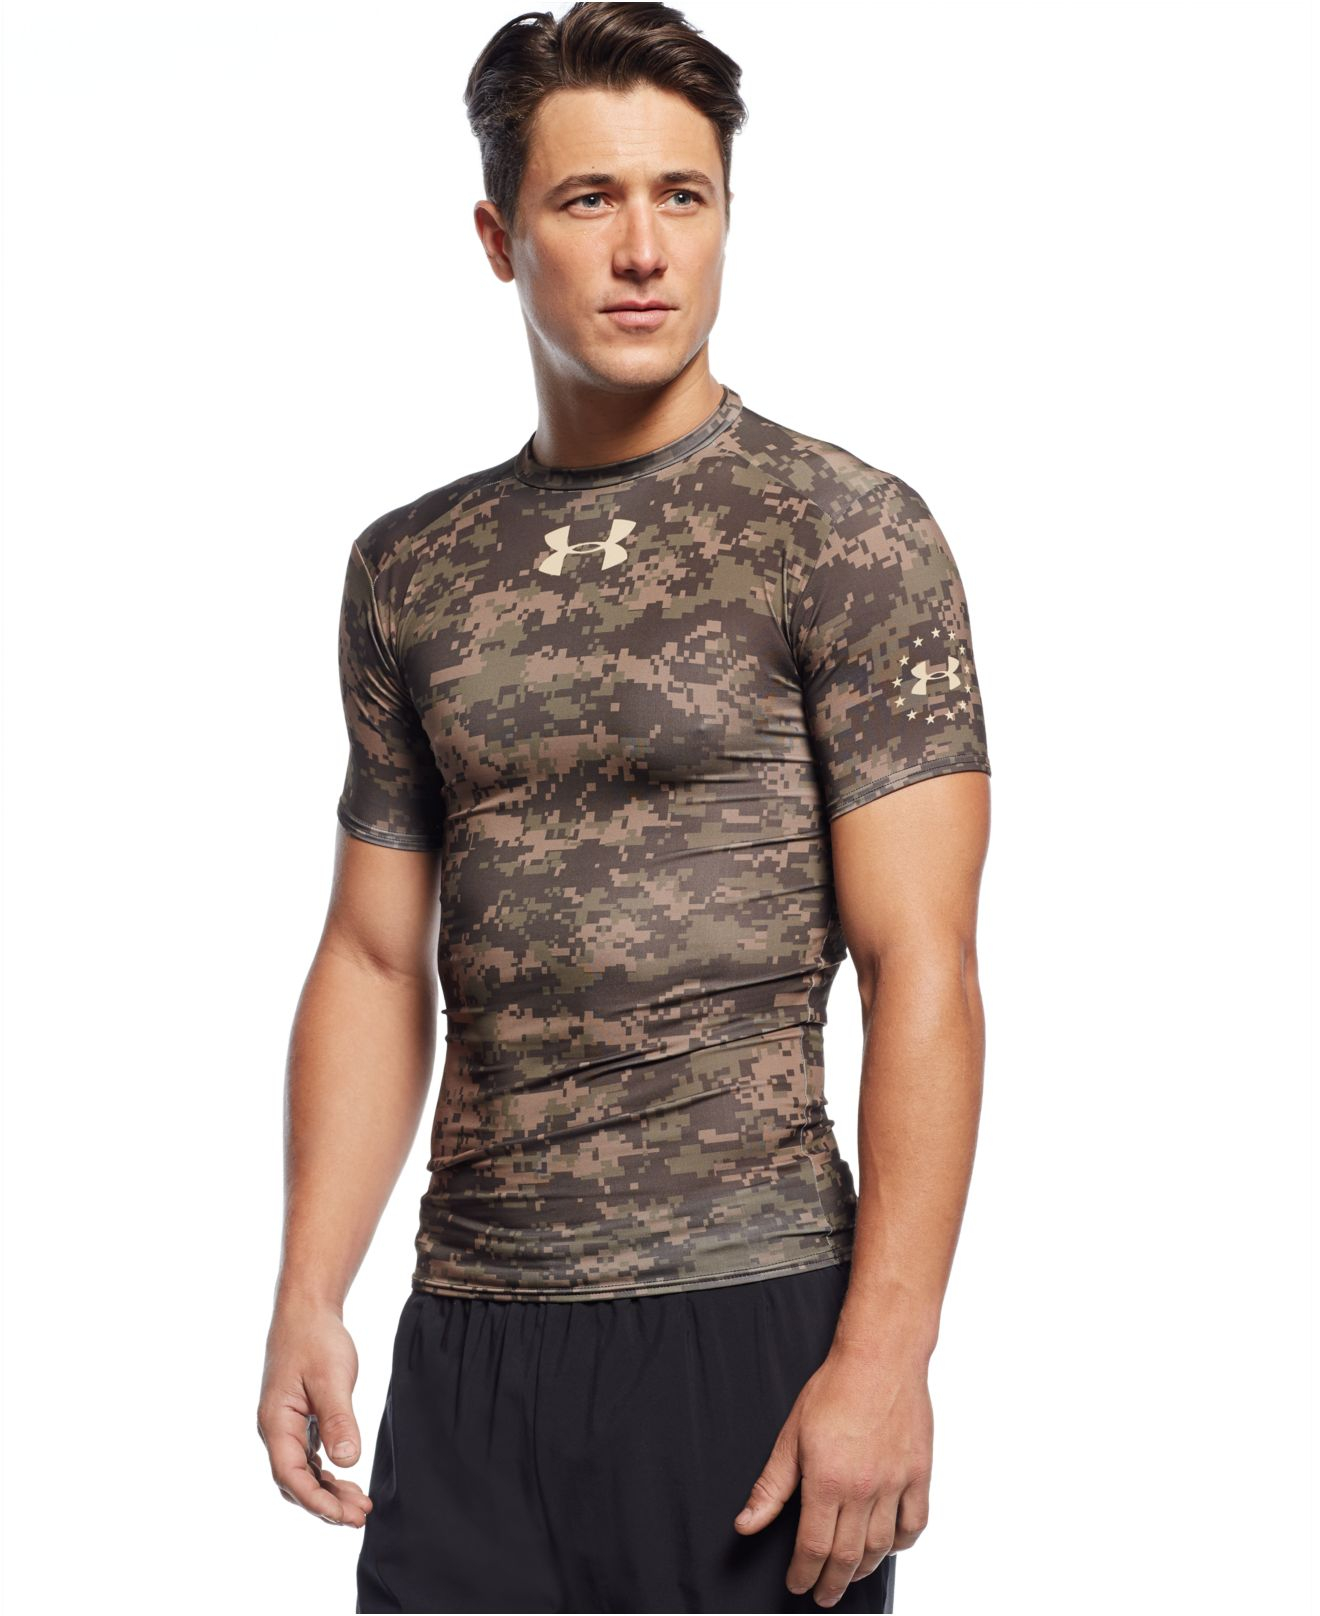 adfb4d92 Under Armour Woodland Camo Compression T-shirt in Green for Men - Lyst